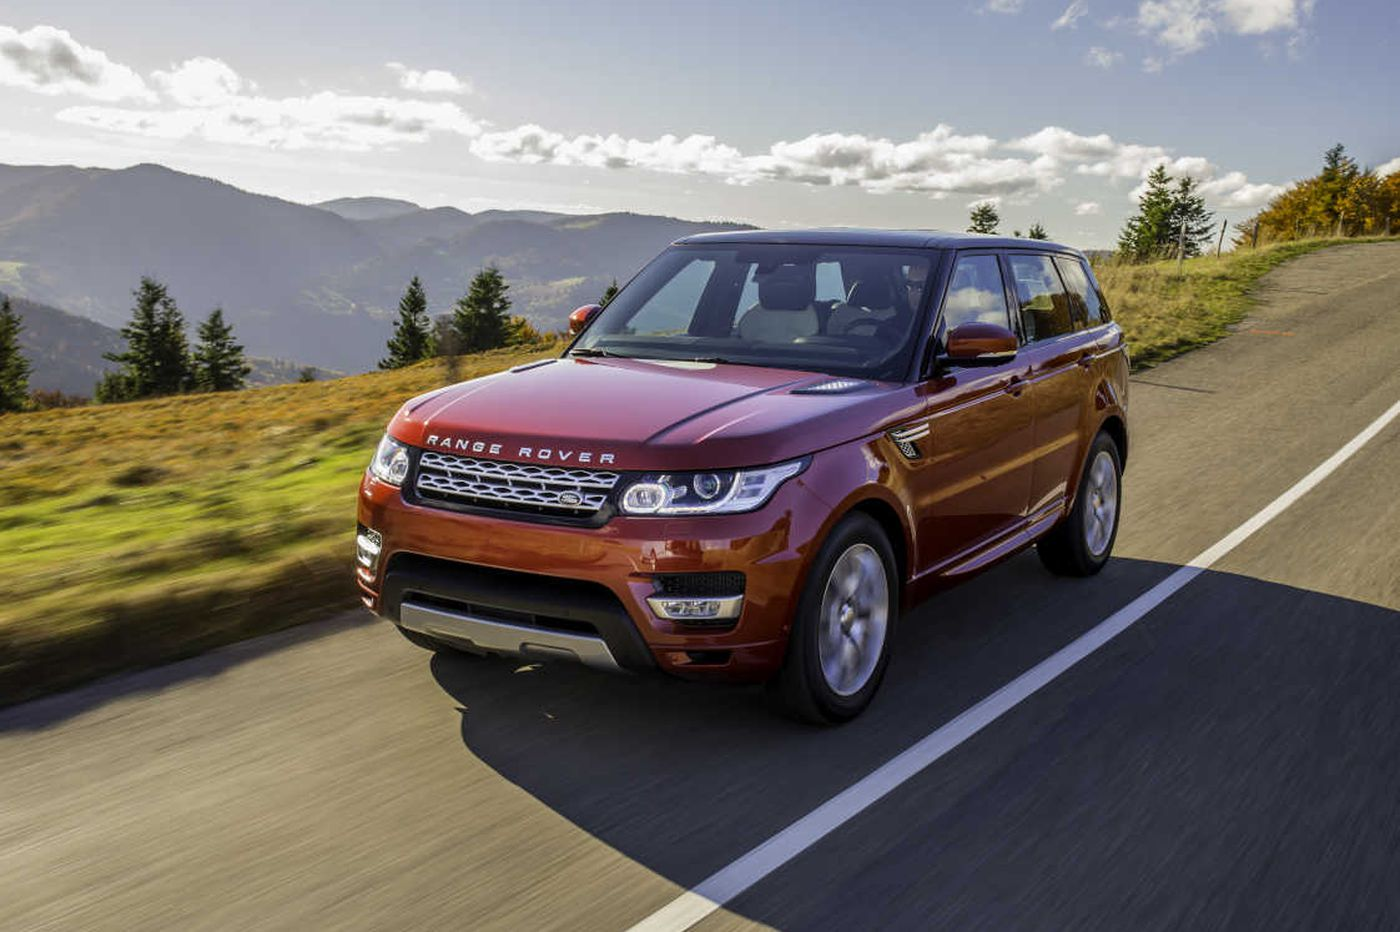 Range Rover Sport goes anywhere in luxury and discomfort